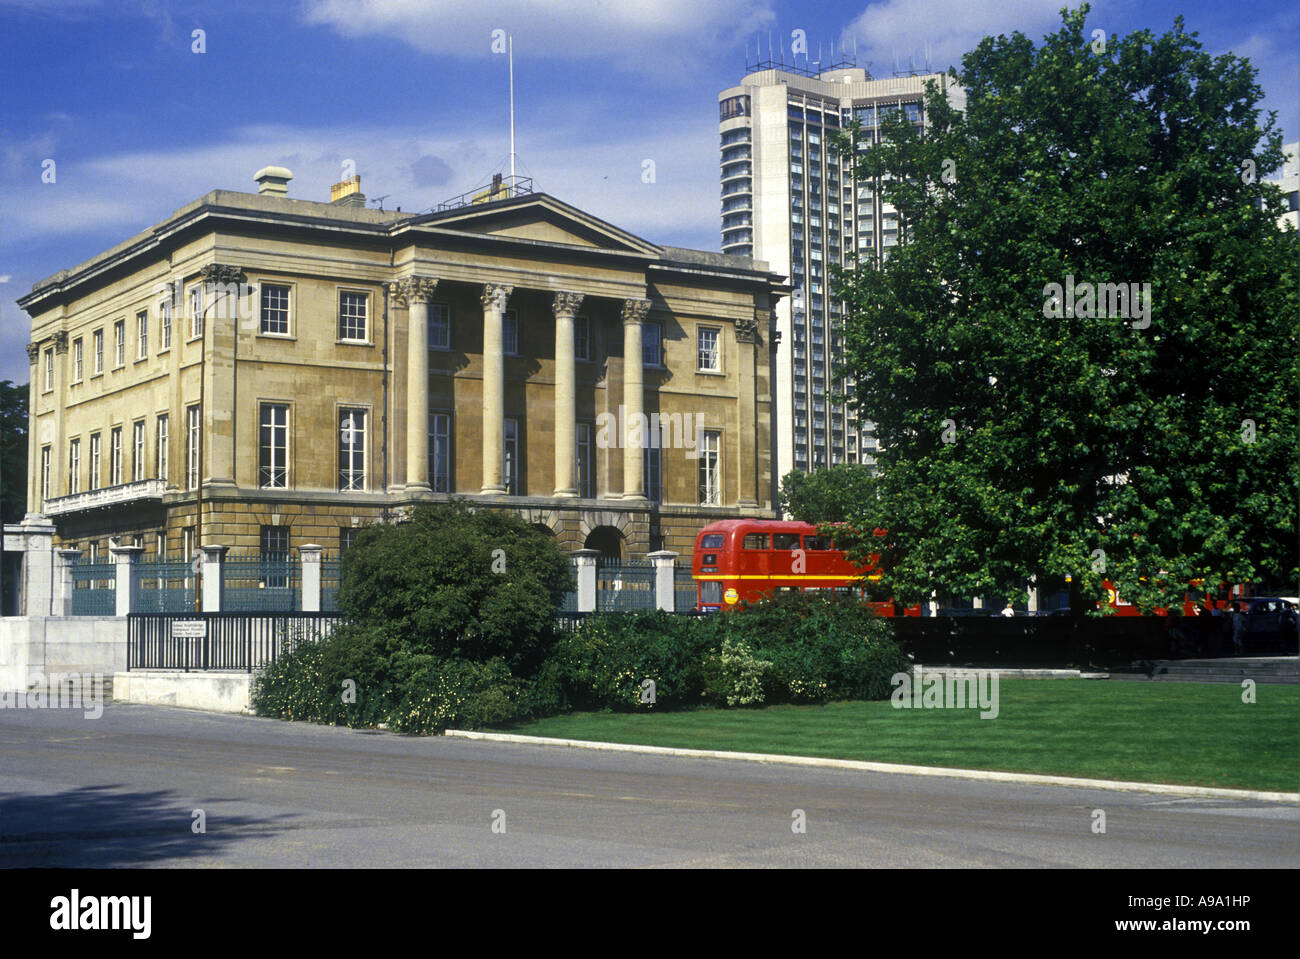 LORD NELSONS HOME NUMBER 1 LONDON APSLEY HOUSE HYDE PARK ENGLAND UK